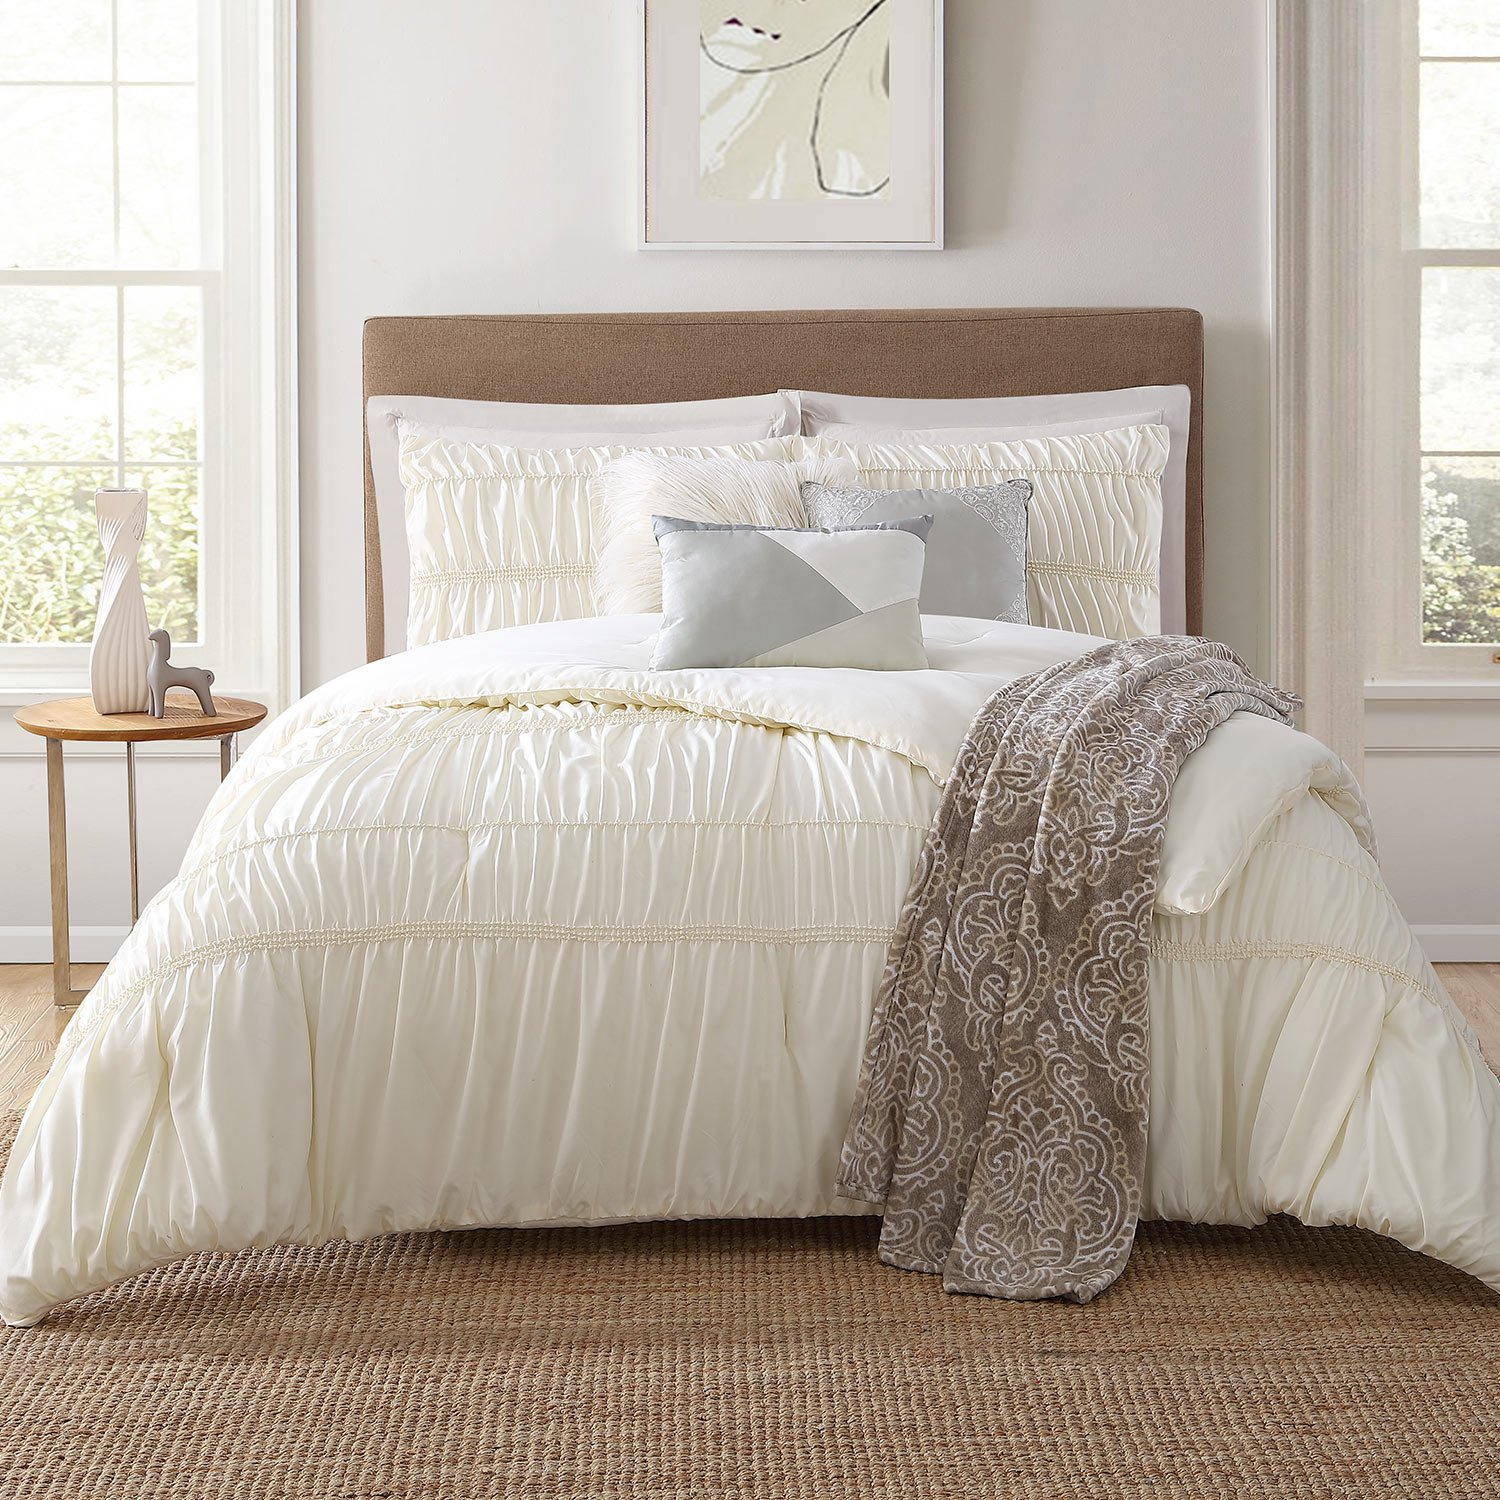 Jennifer Adams Home 7 Piece Comforter Set Jennifer Adams 7 Pcs, King, Belovo by Jennifer Adams Home